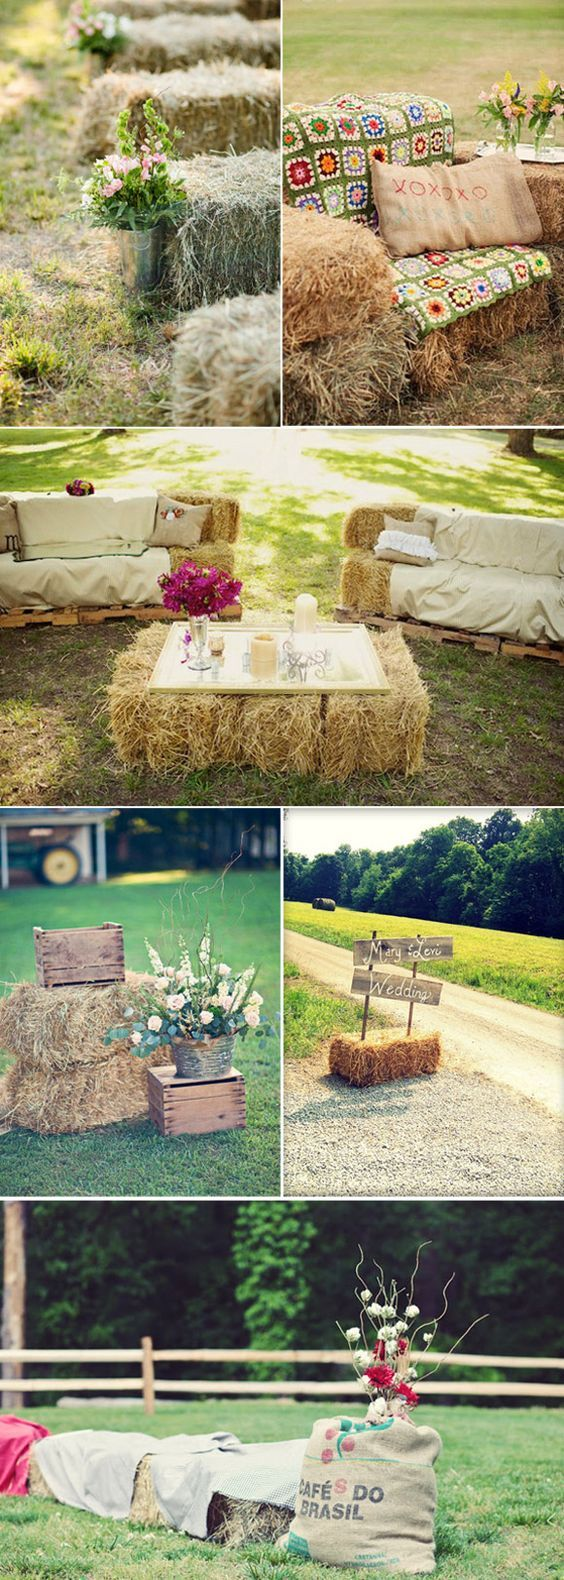 rustic country farm hay wedding ideas / http://www.himisspuff.com/country-rustic-wedding-ideas/5/